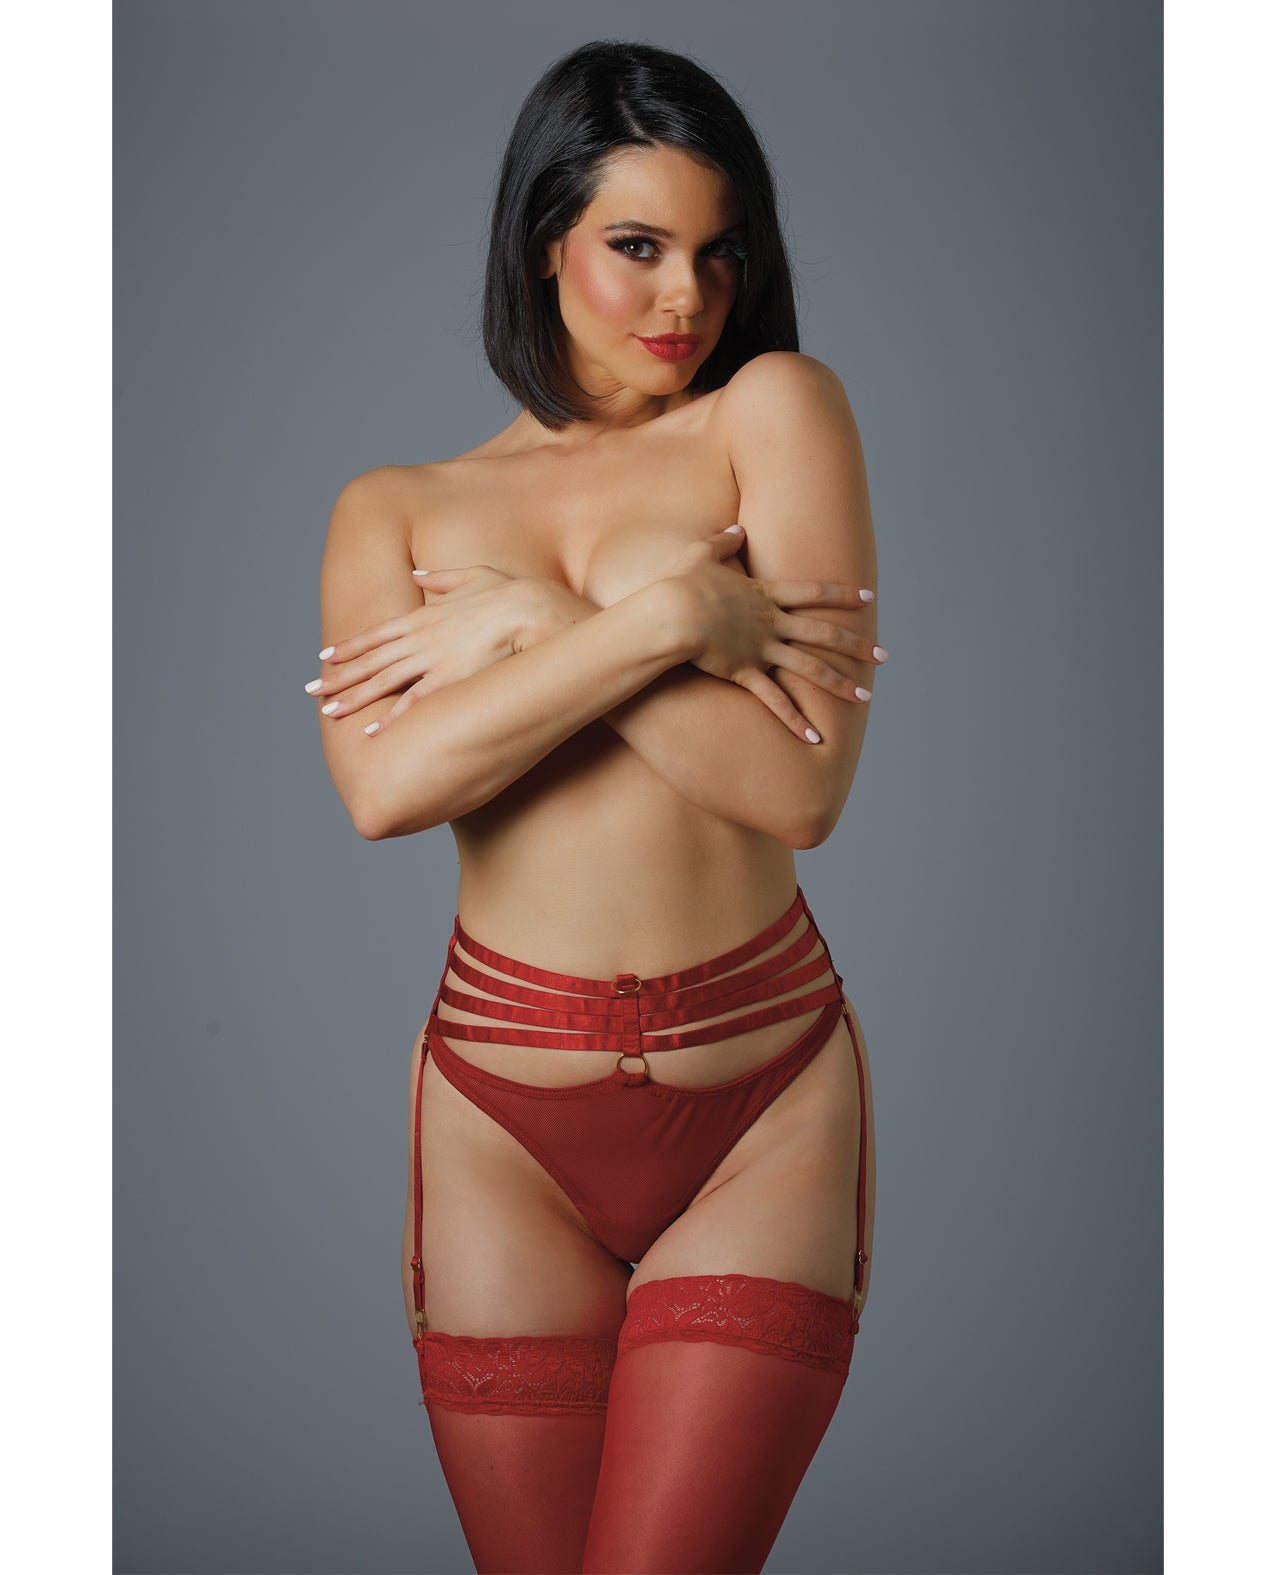 Adore 4ever Yours Garter Panty (Pasties Not Included) Red O/S